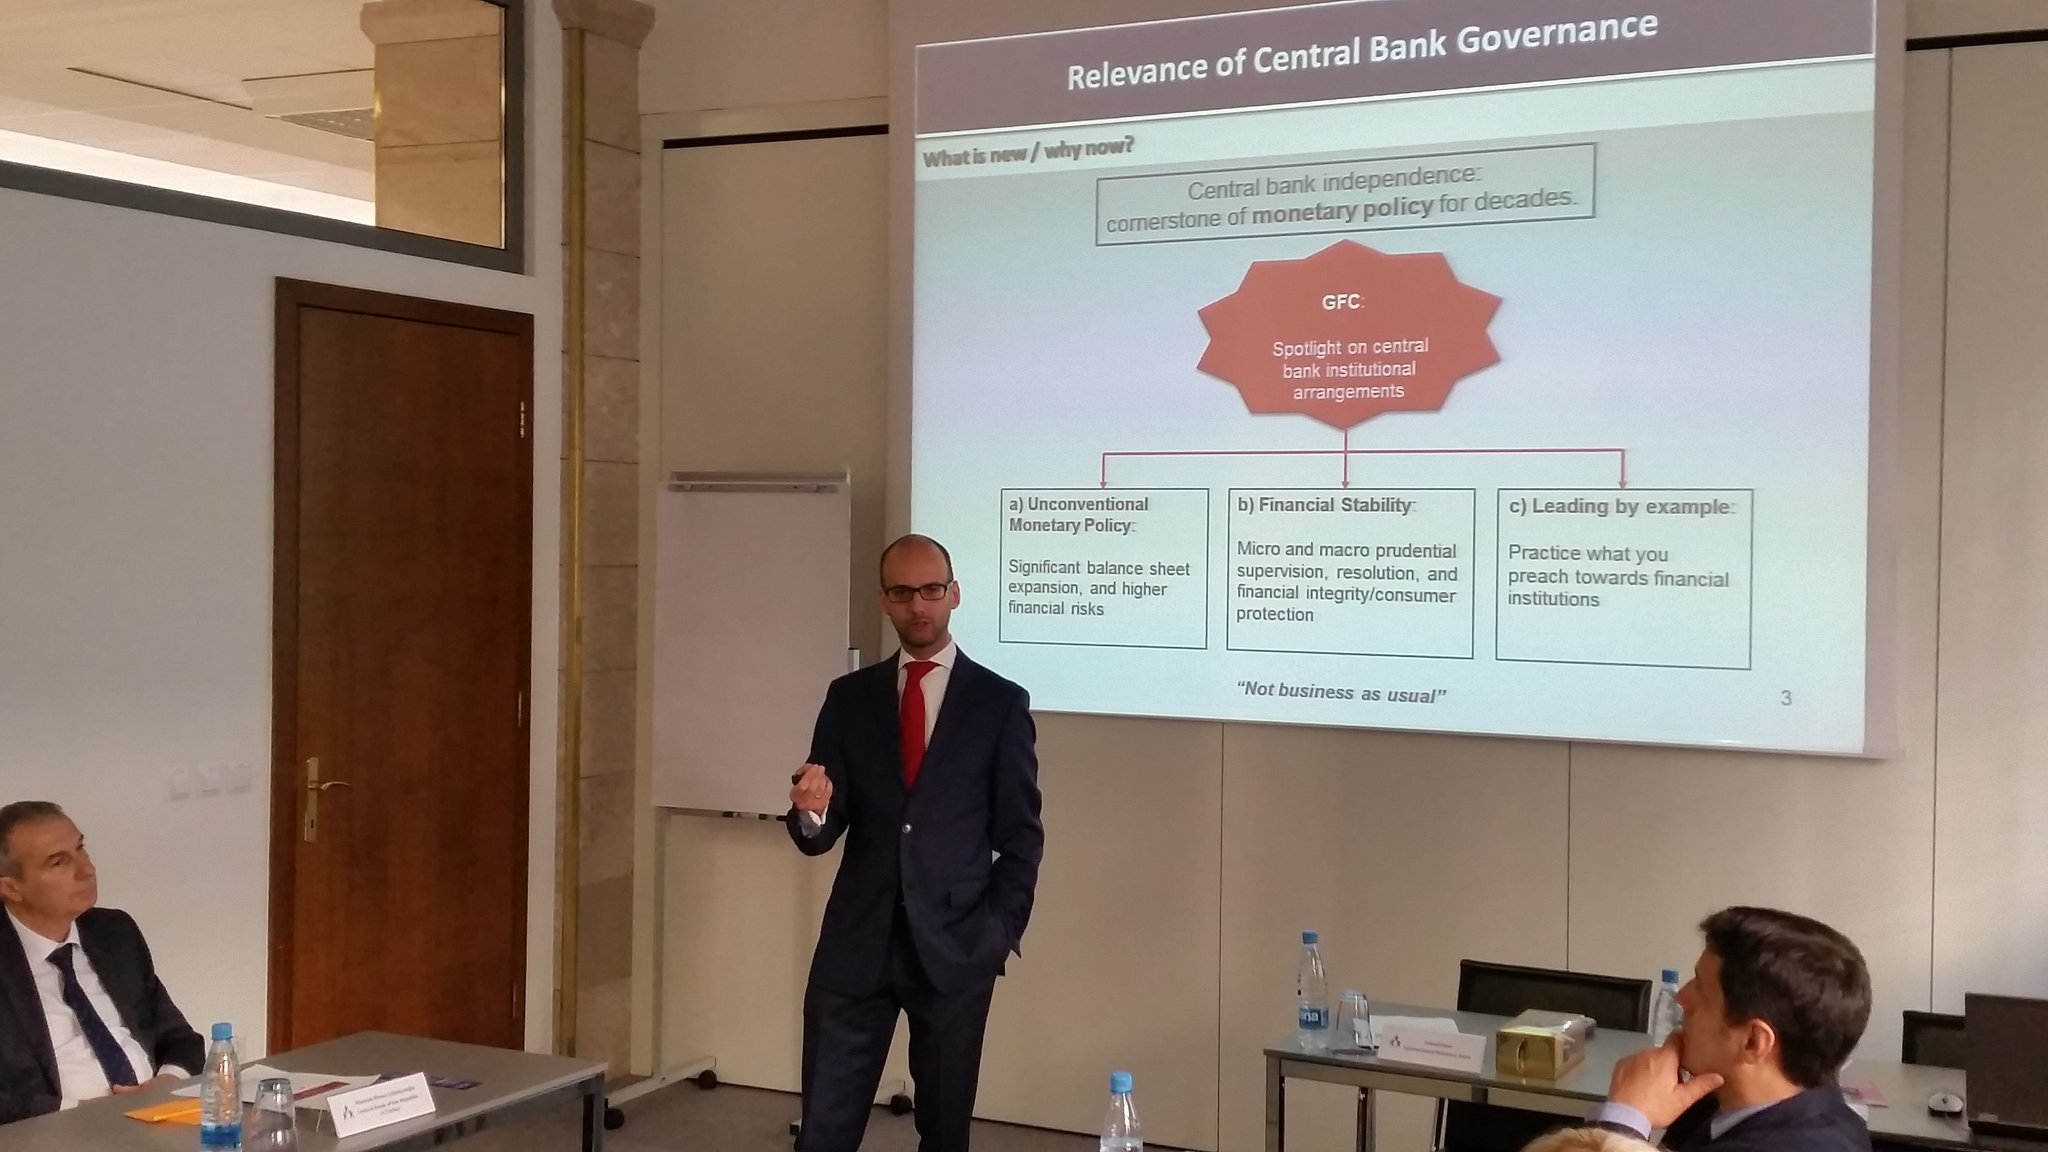 Starting the day with key pillars of effective #CBgovernance by Ashraf Khan, @imfcapdev #CEFlearning https://t.co/ErK9rSoLbJ